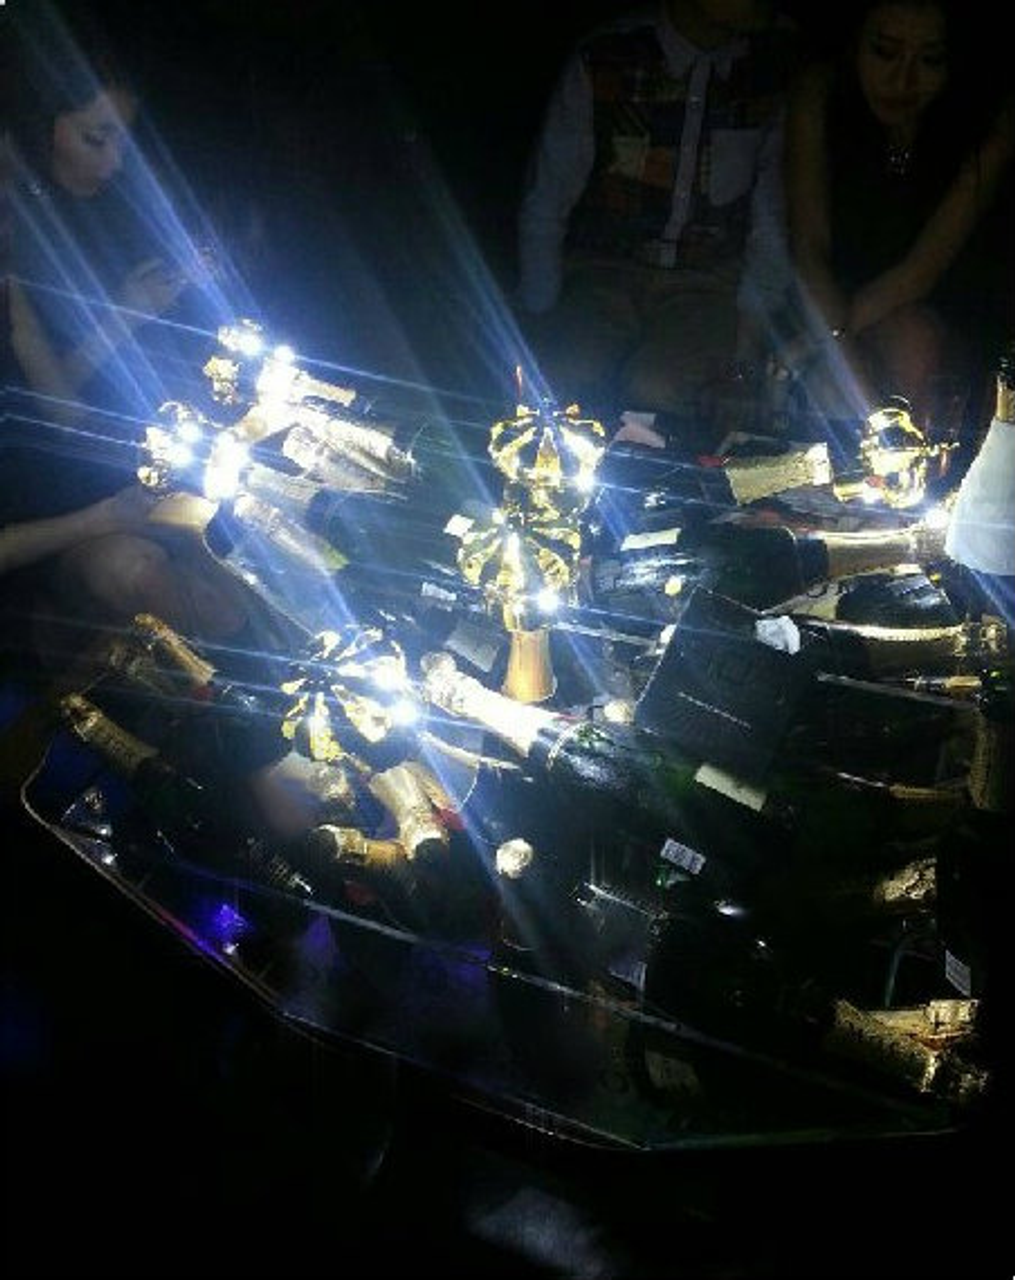 LED CHAMPAGNE BOTTLE CROWN,LED CROWN, CHAMPAGNE CROWN, LED ,BOTTLE SERVICE ,CROWN, MOET, CHAMPAGNE, DELIVERY, ADD, ORDER, BUY, LED BOTTLE, SERVICE,